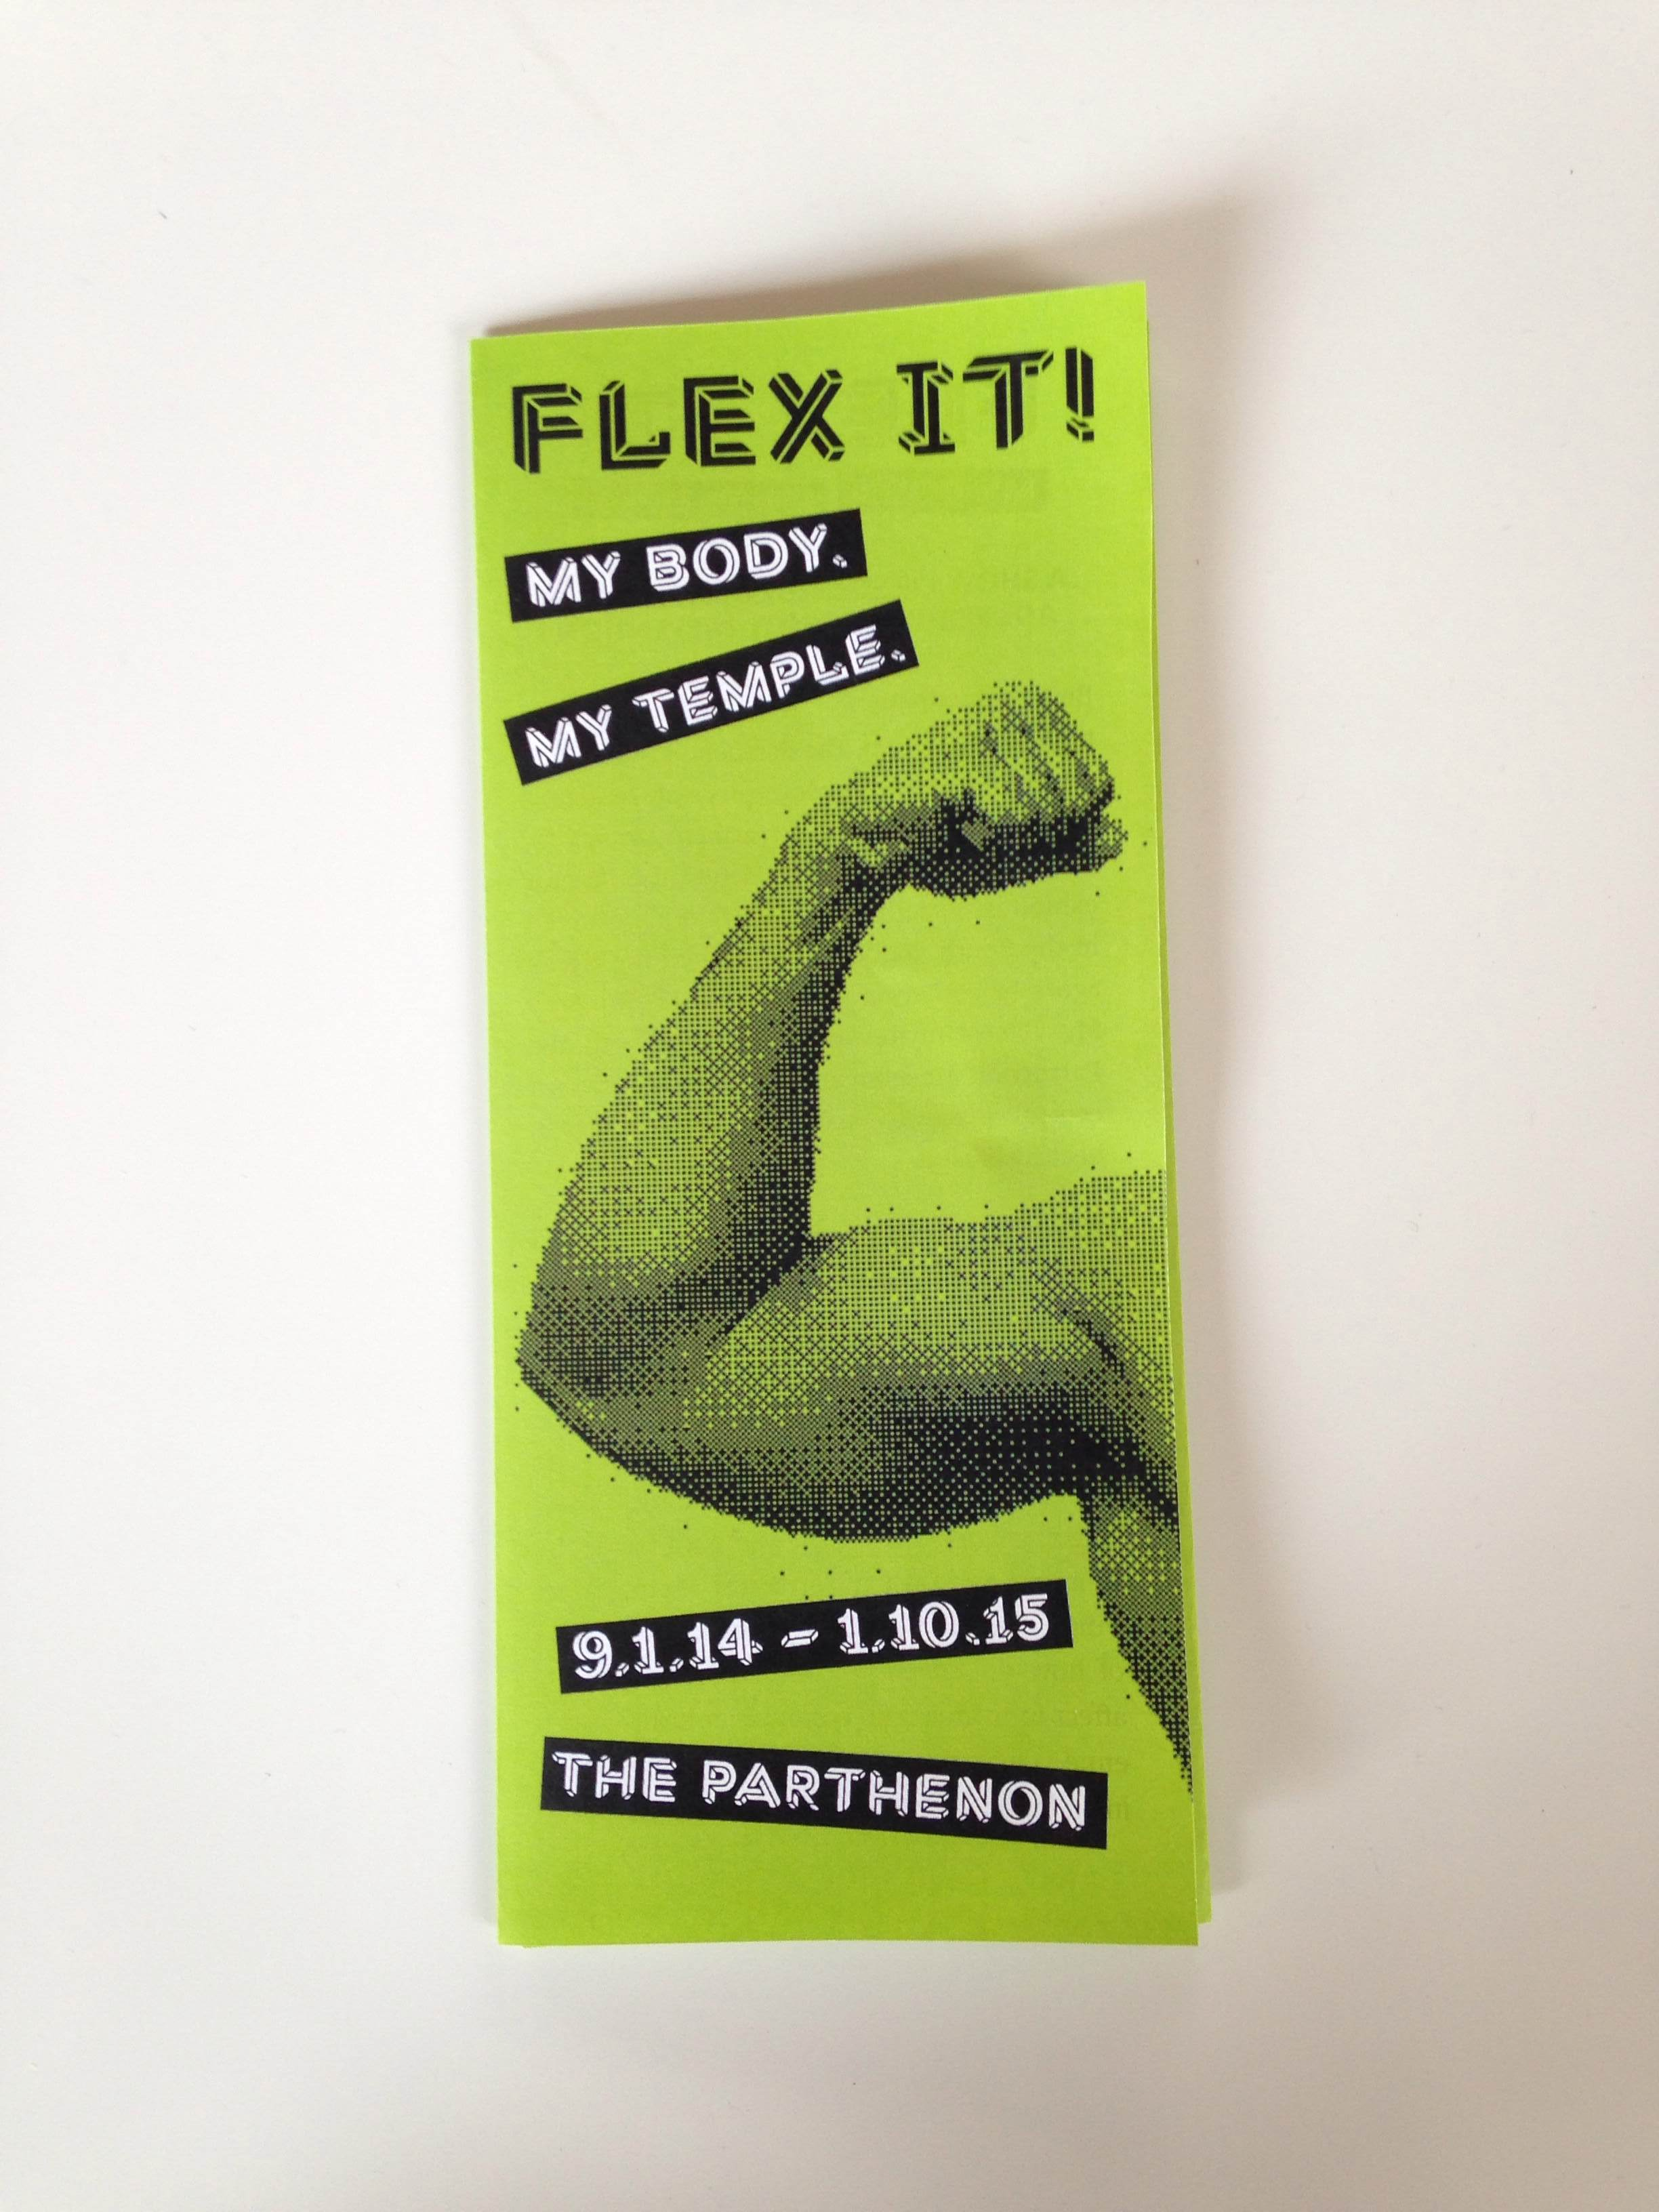 Flex it trifold.JPG